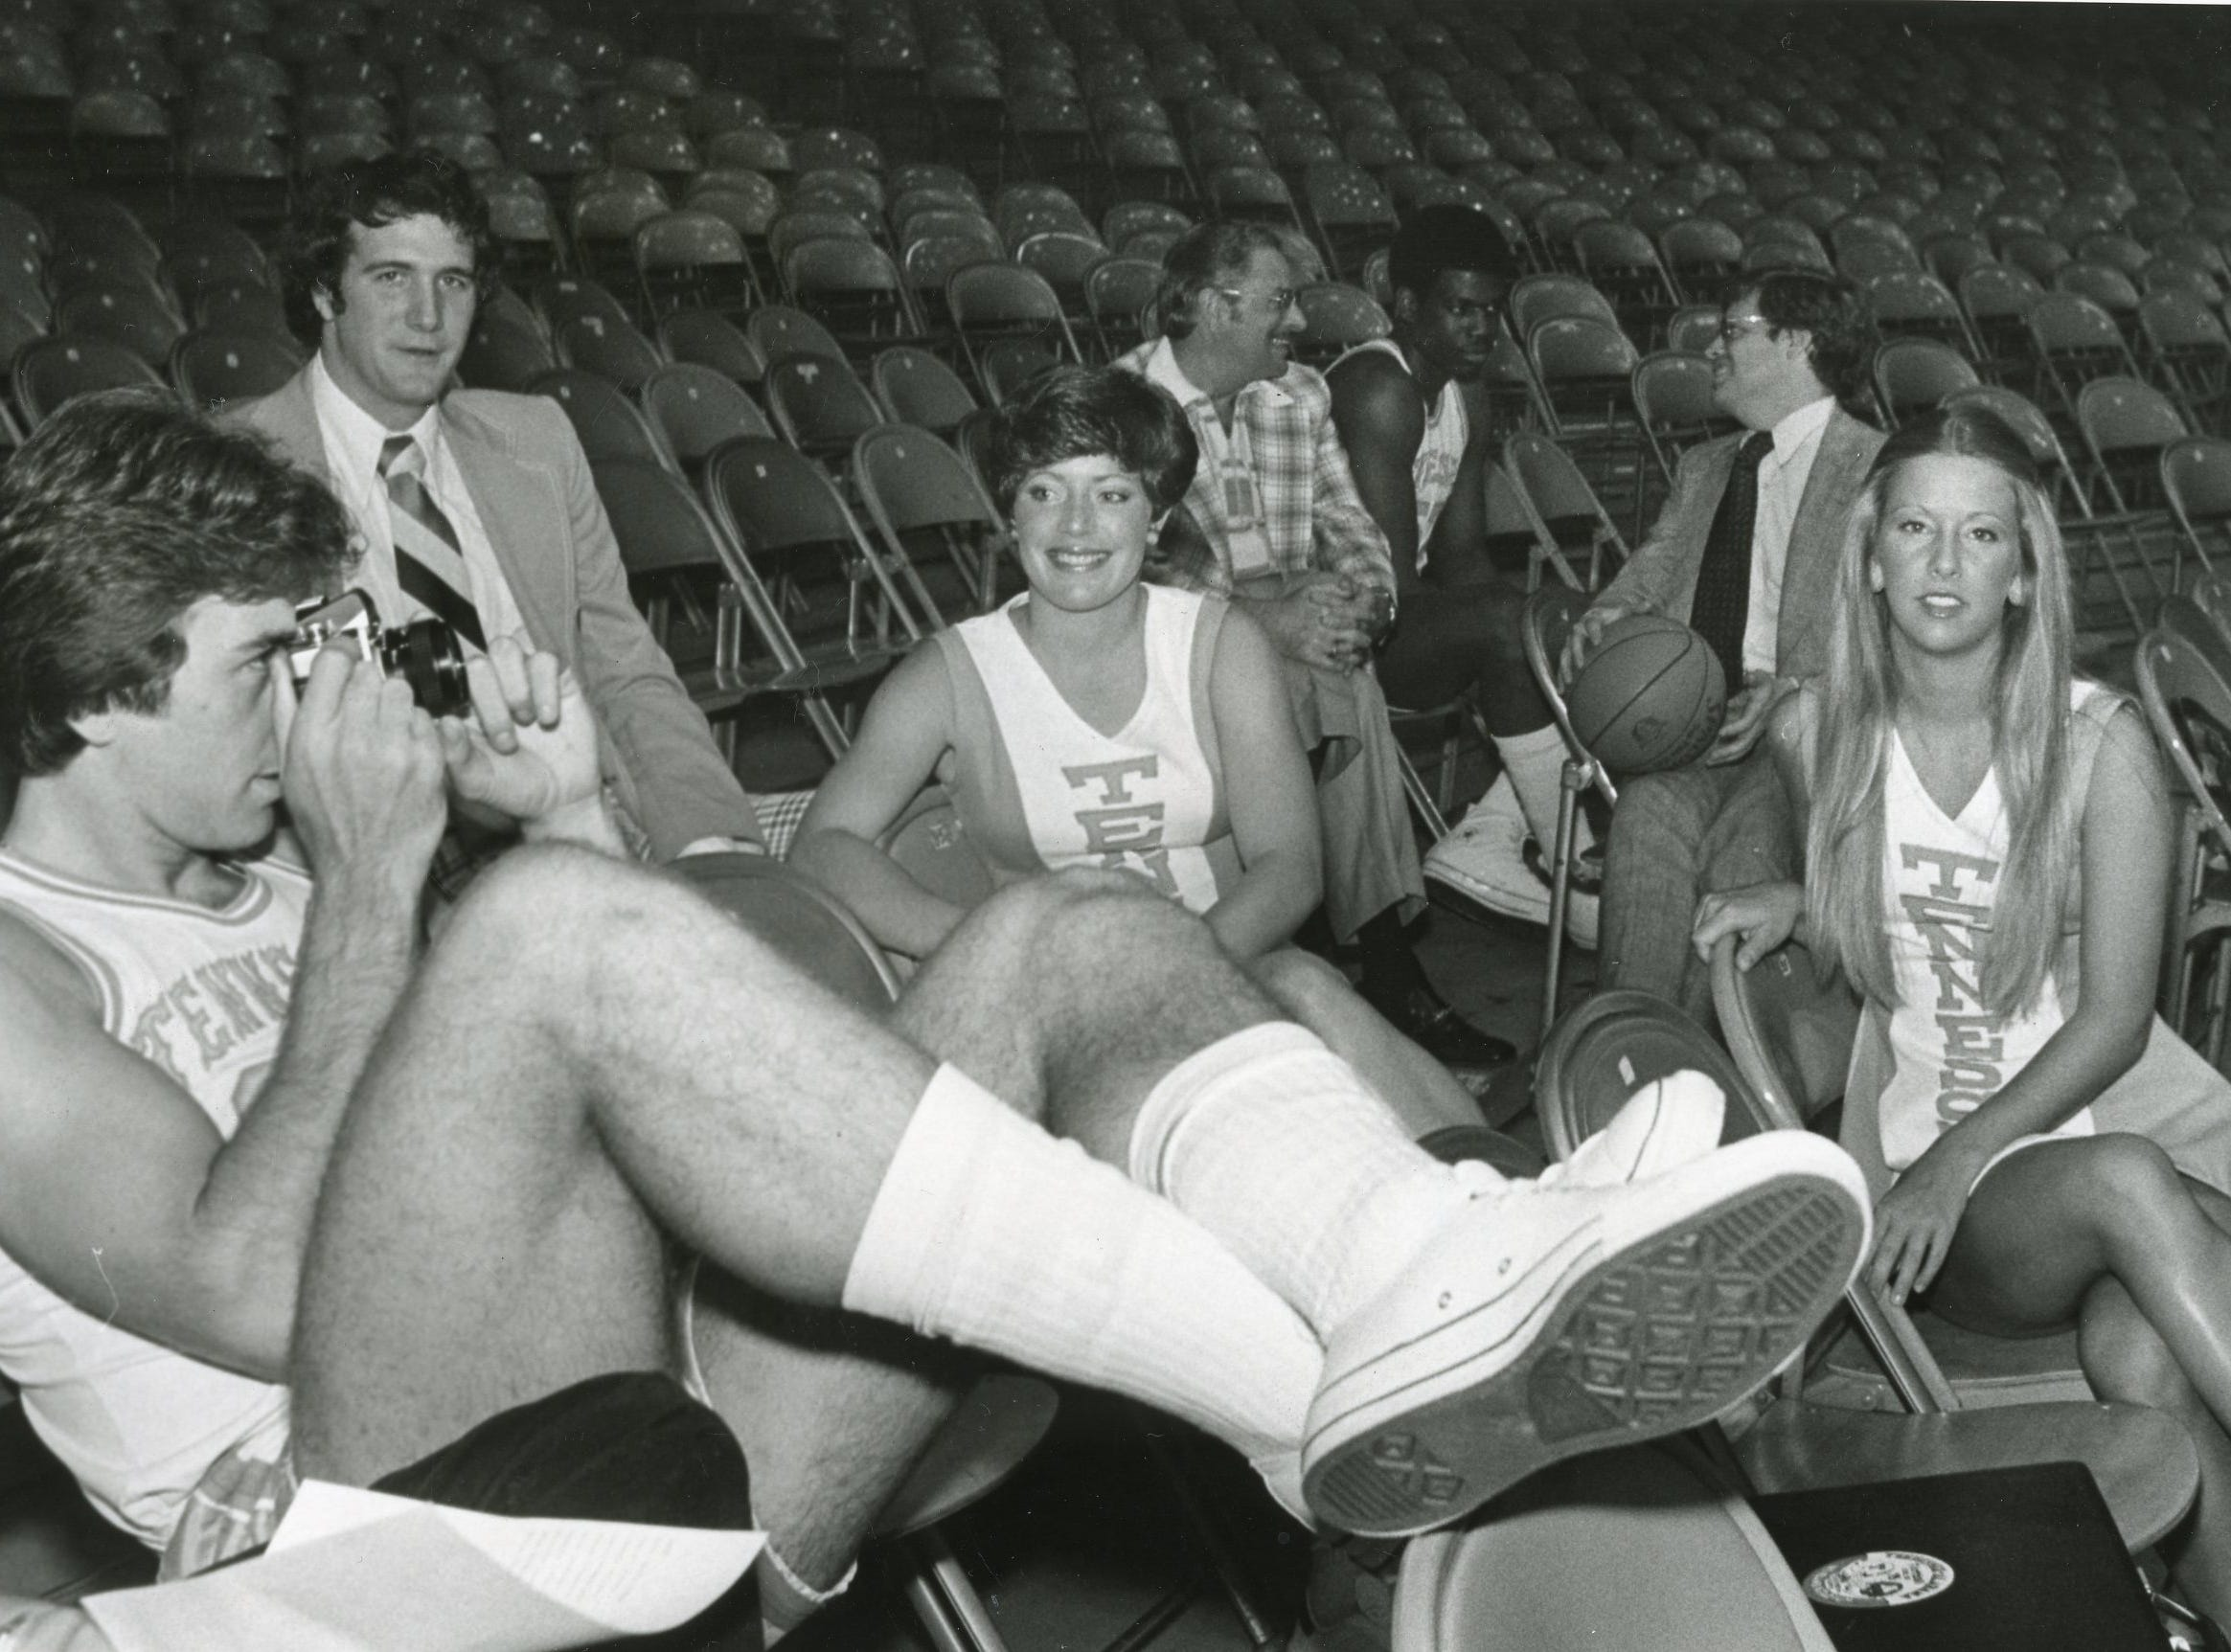 Ernie Grunfeld takes a photo as UT cheerleaders Sandy Reel and Pam Johnston look on in this October, 1976 photo.